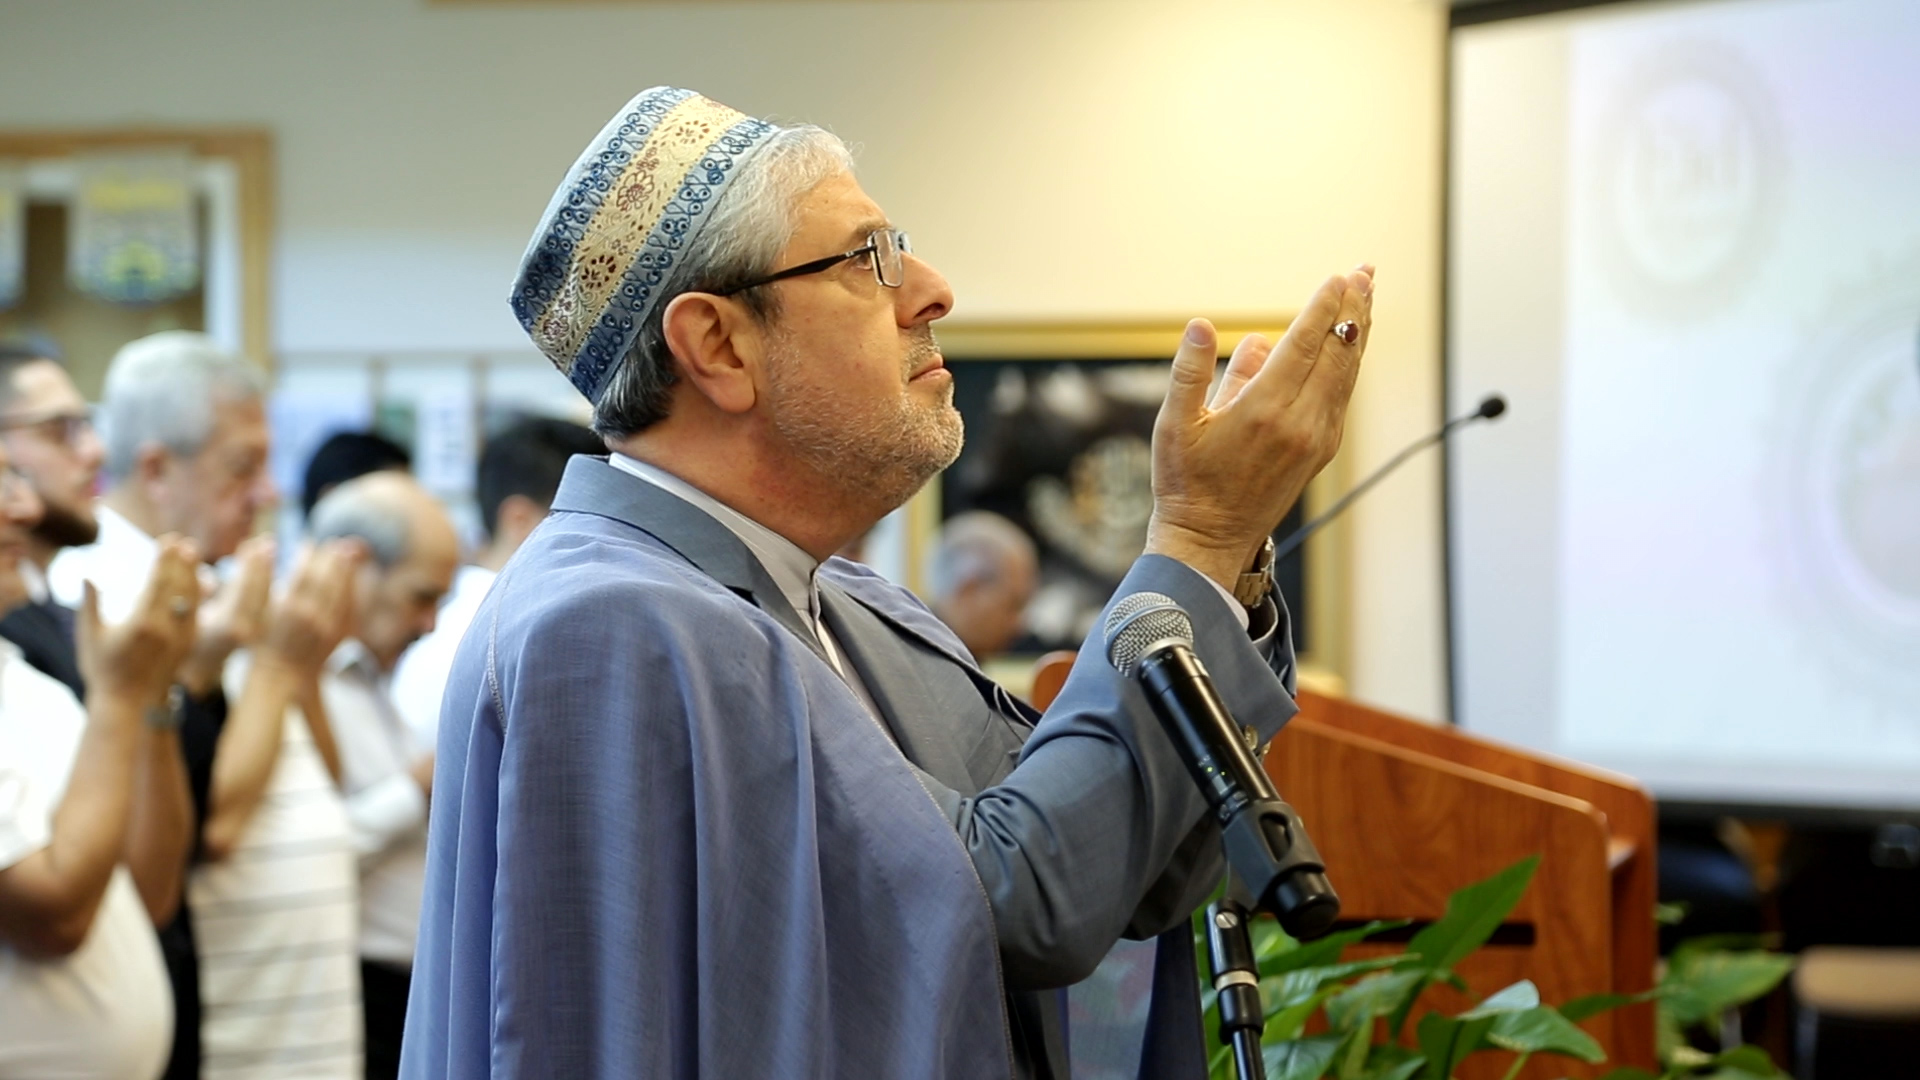 Photo of Imam Seyed Ali Ghazvini leading a prayer